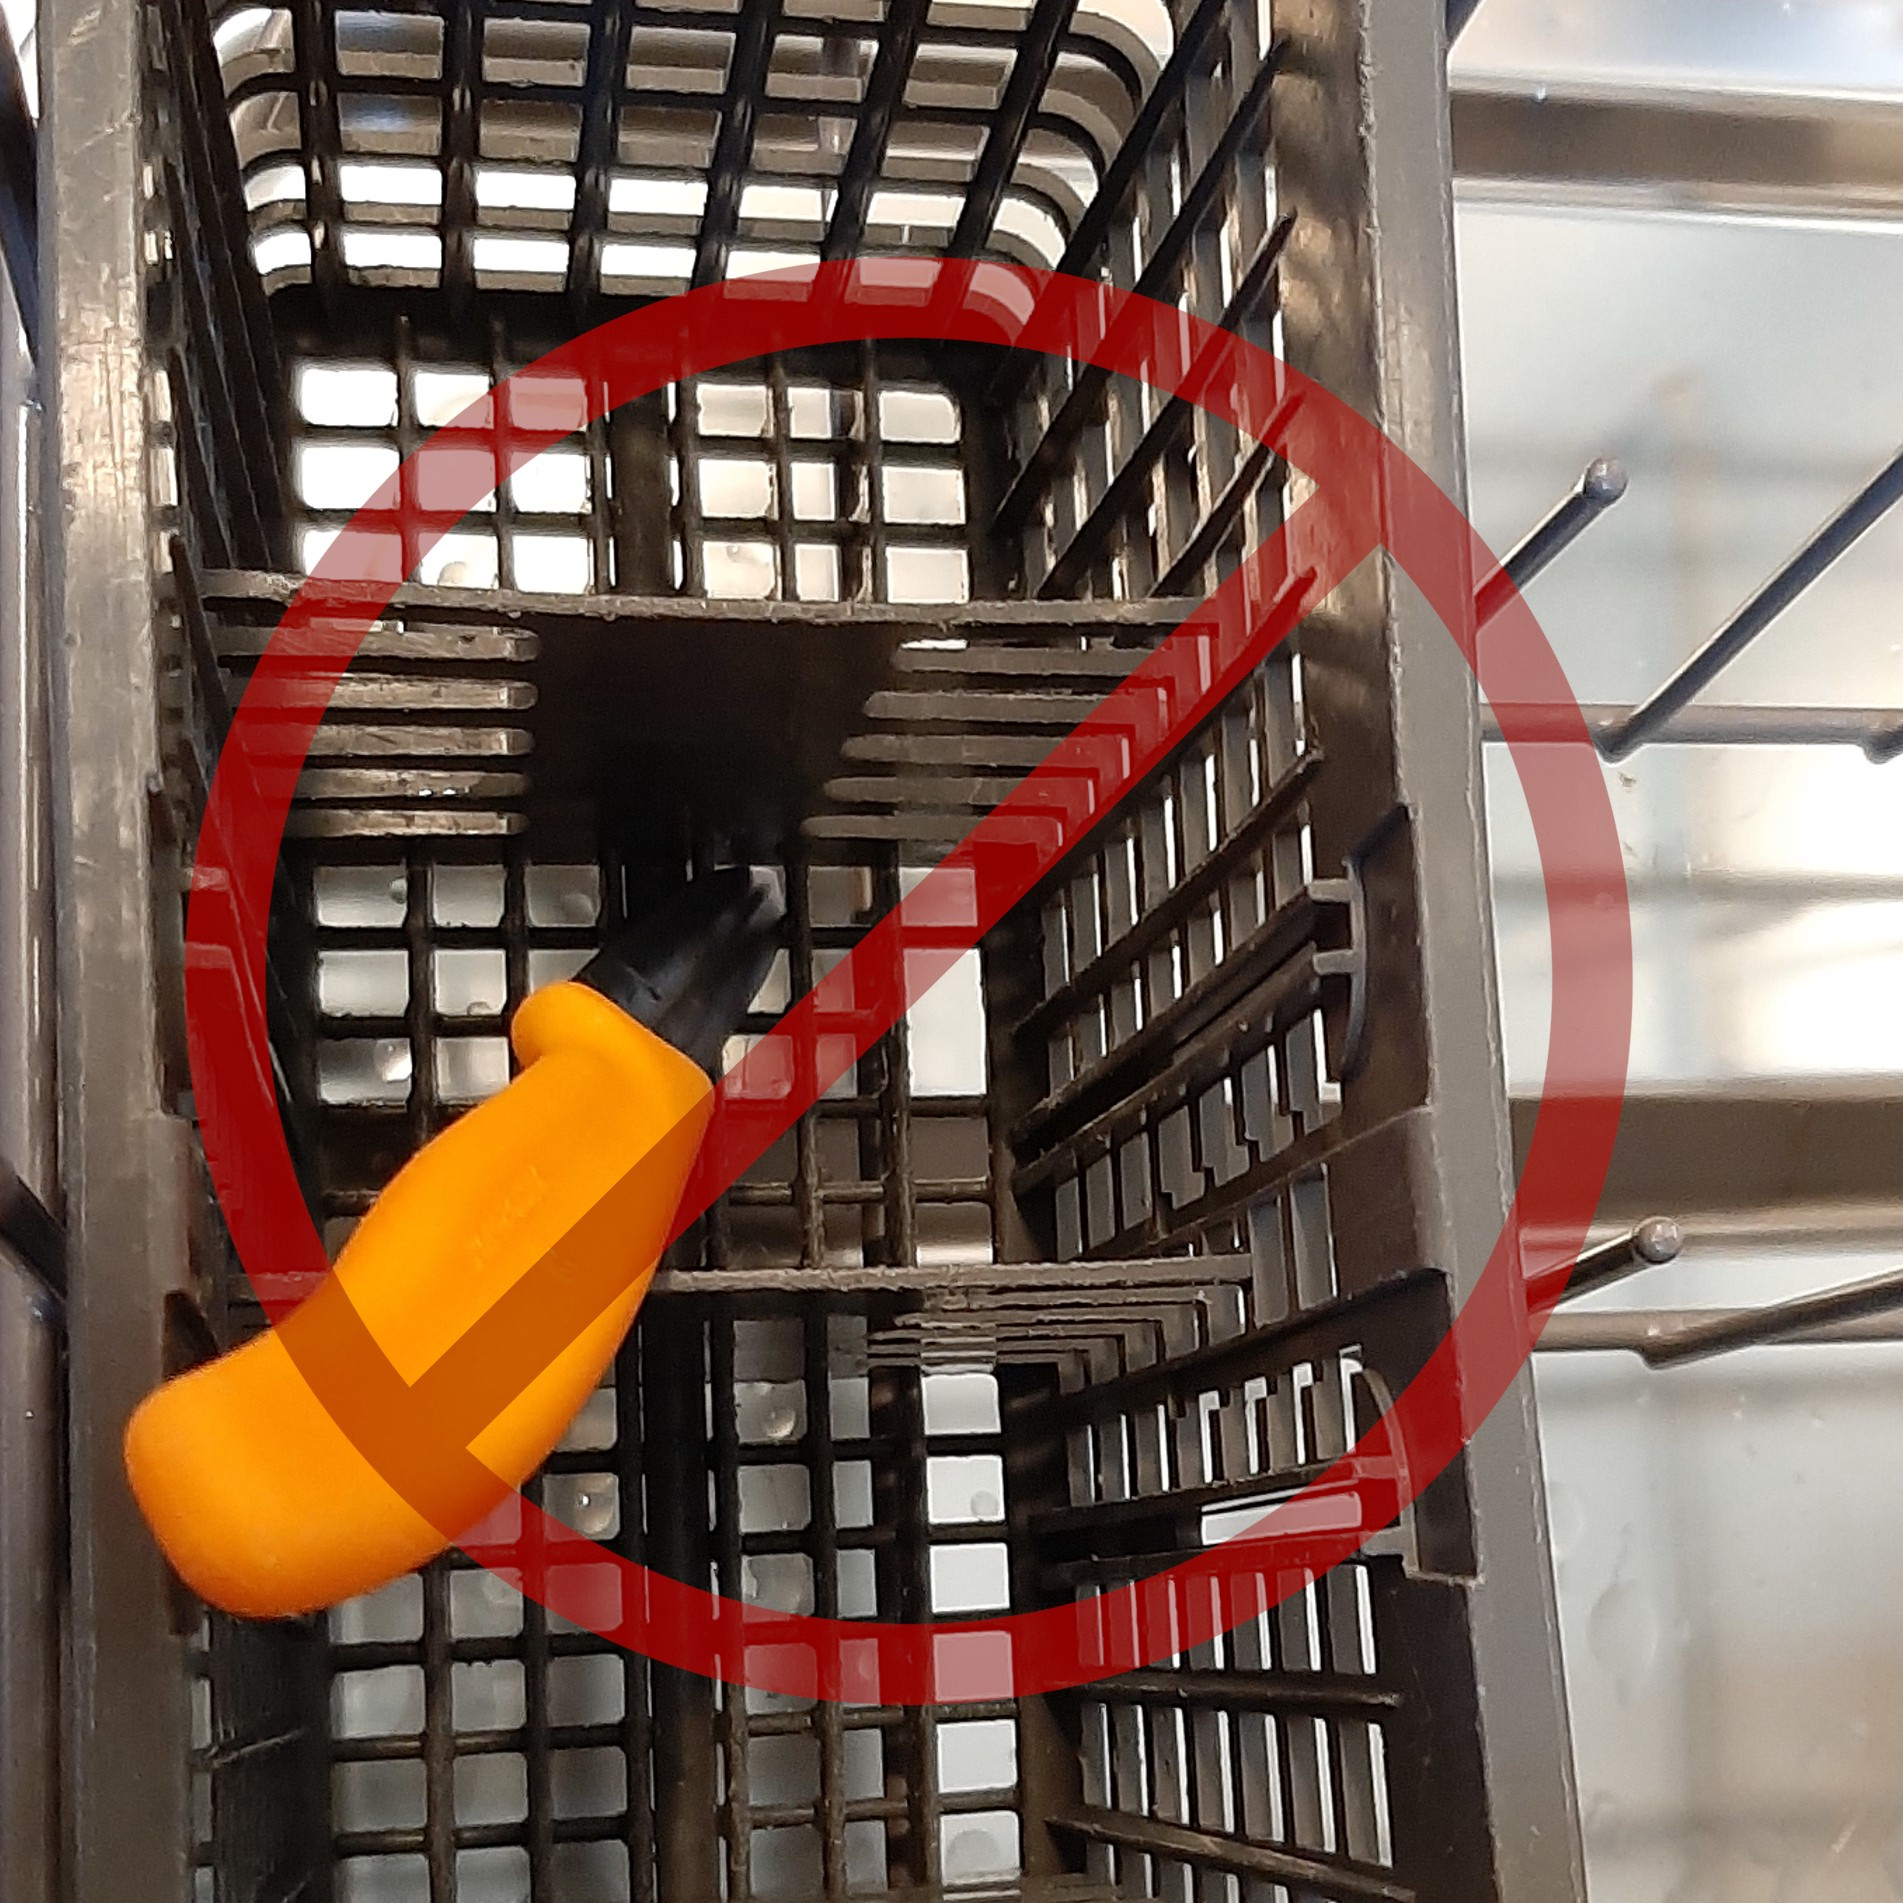 Point down knives have damaged this basket, and risk stopping the sprayer